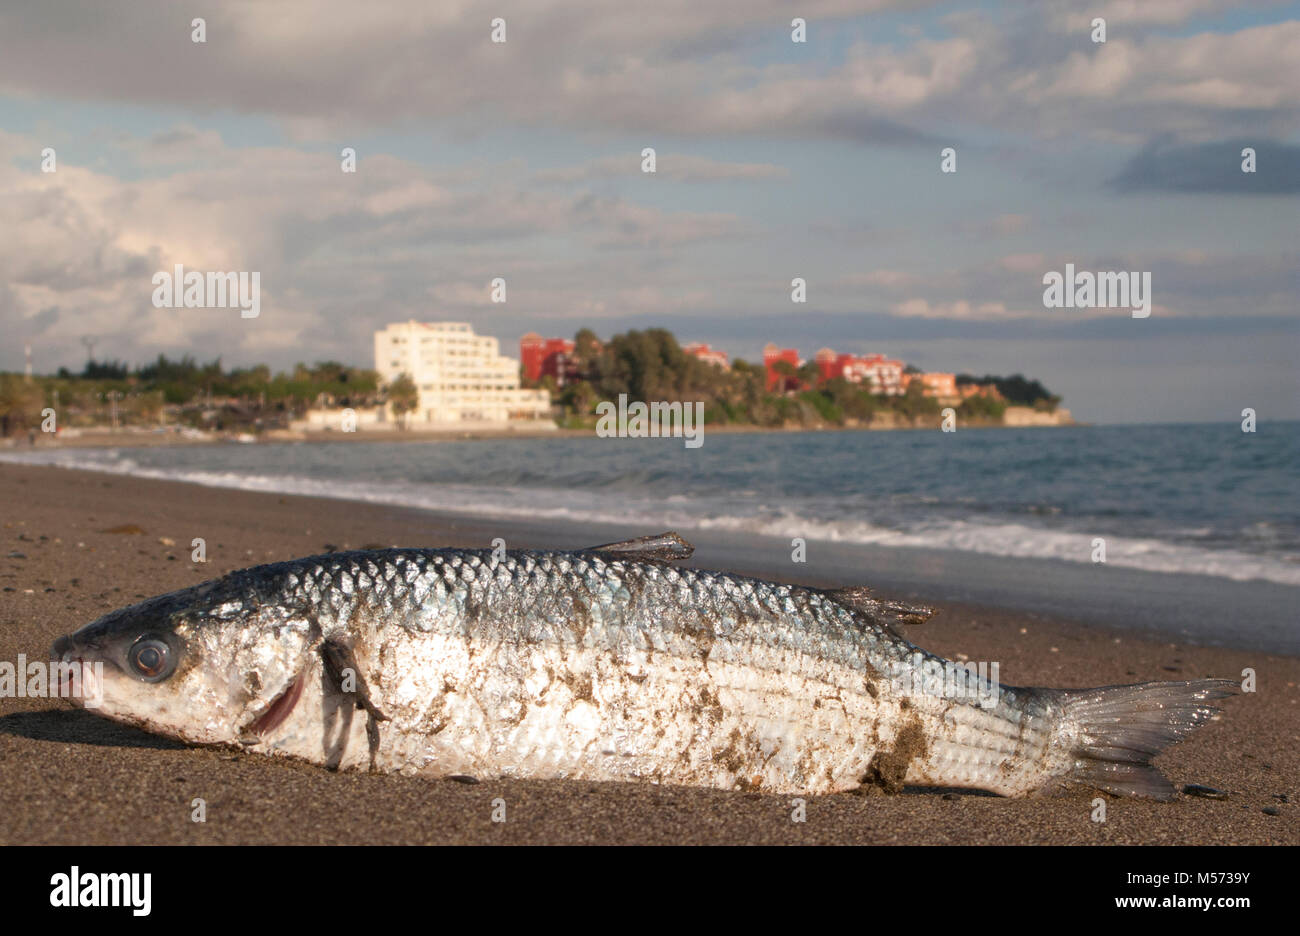 A rouge fish seems a bit out of water on a beach in southern Spain. - Stock Image